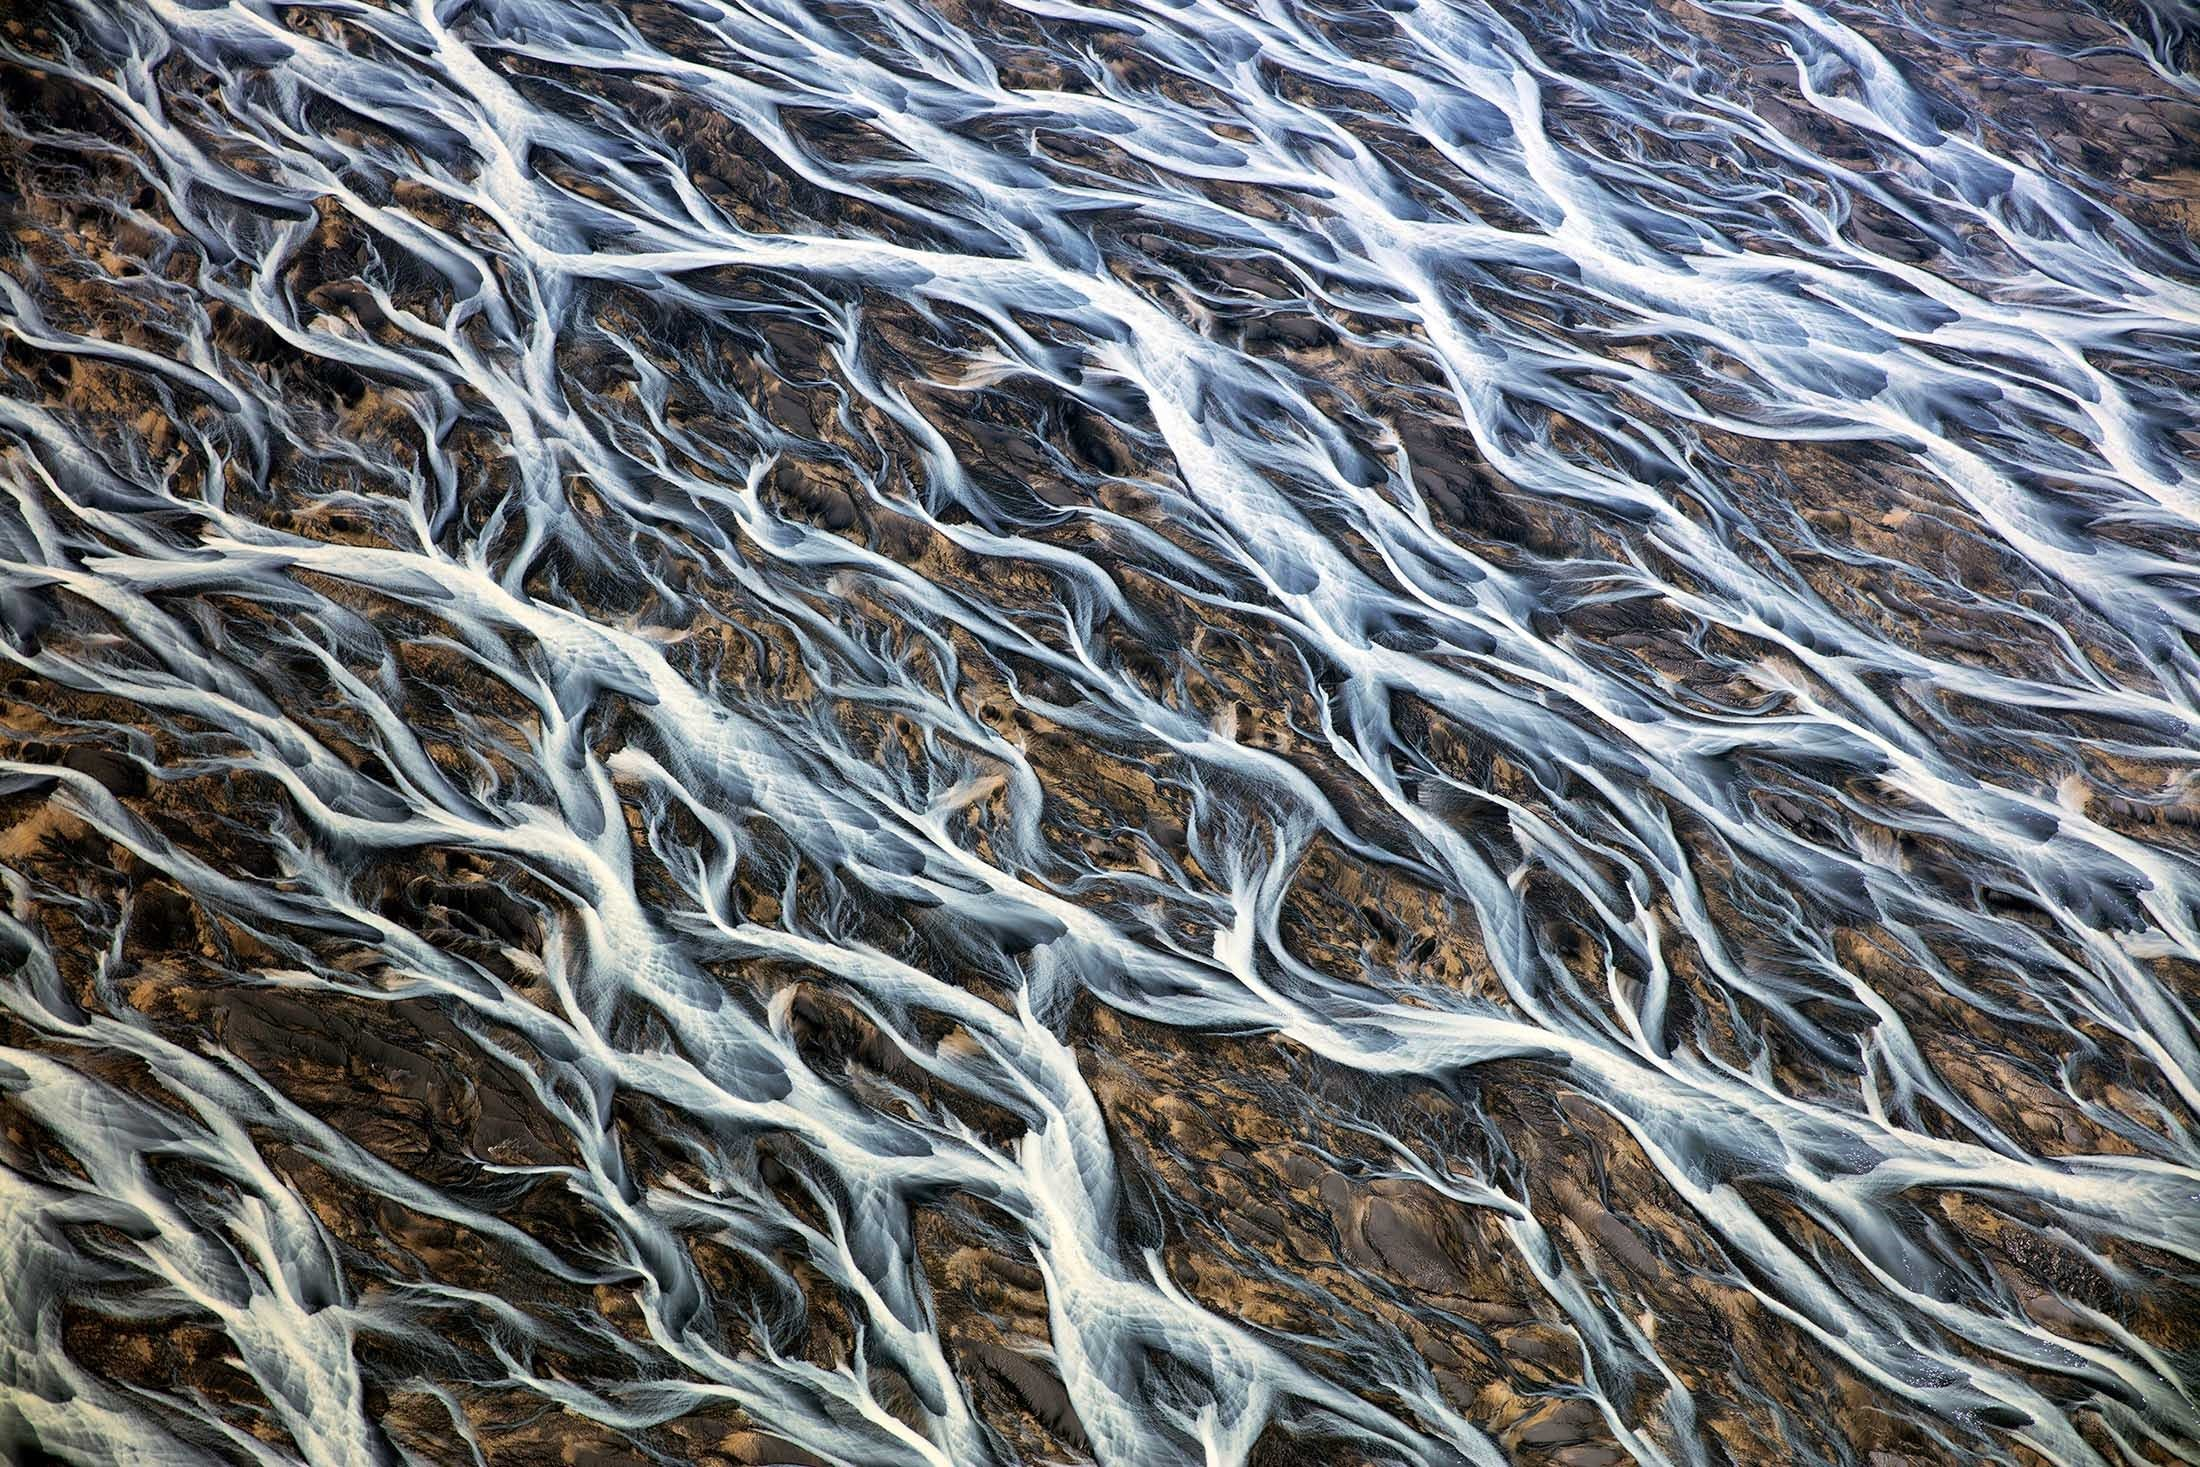 Iceland's Braided Rivers - Iceland travel